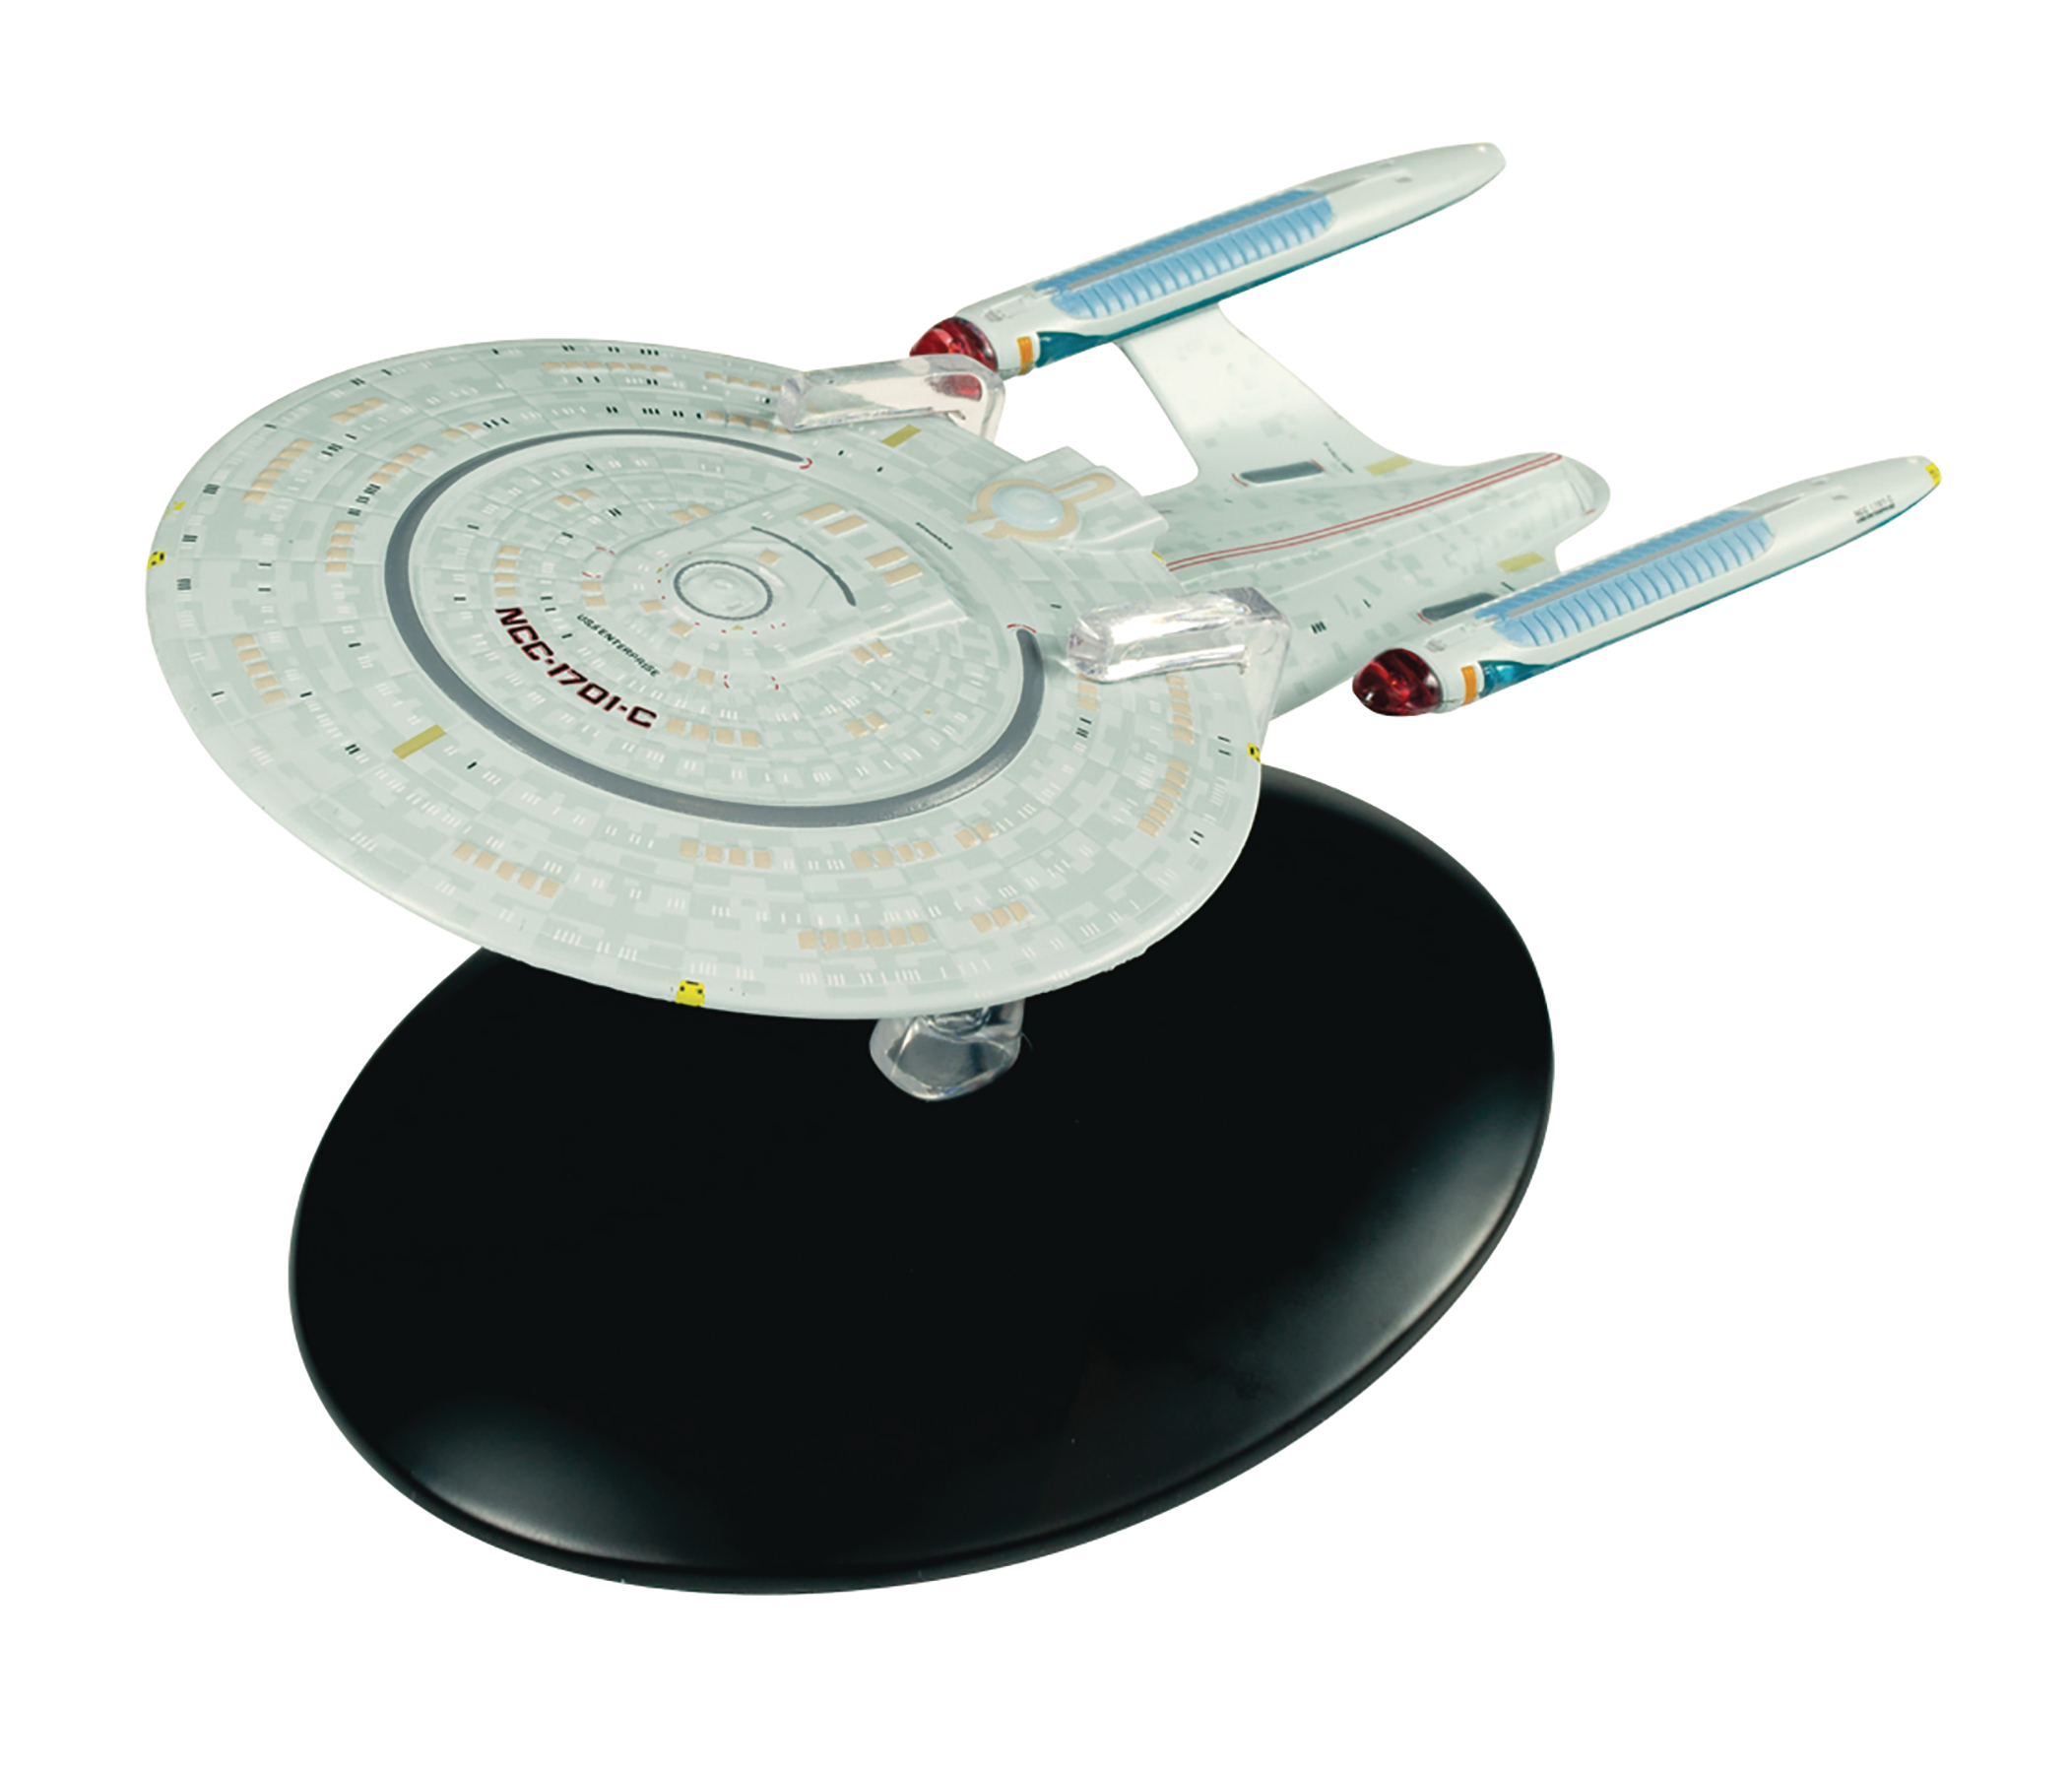 STAR TREK STARSHIPS FIG MAG BONUS #7 NCC-1701C PROBERT CONCE